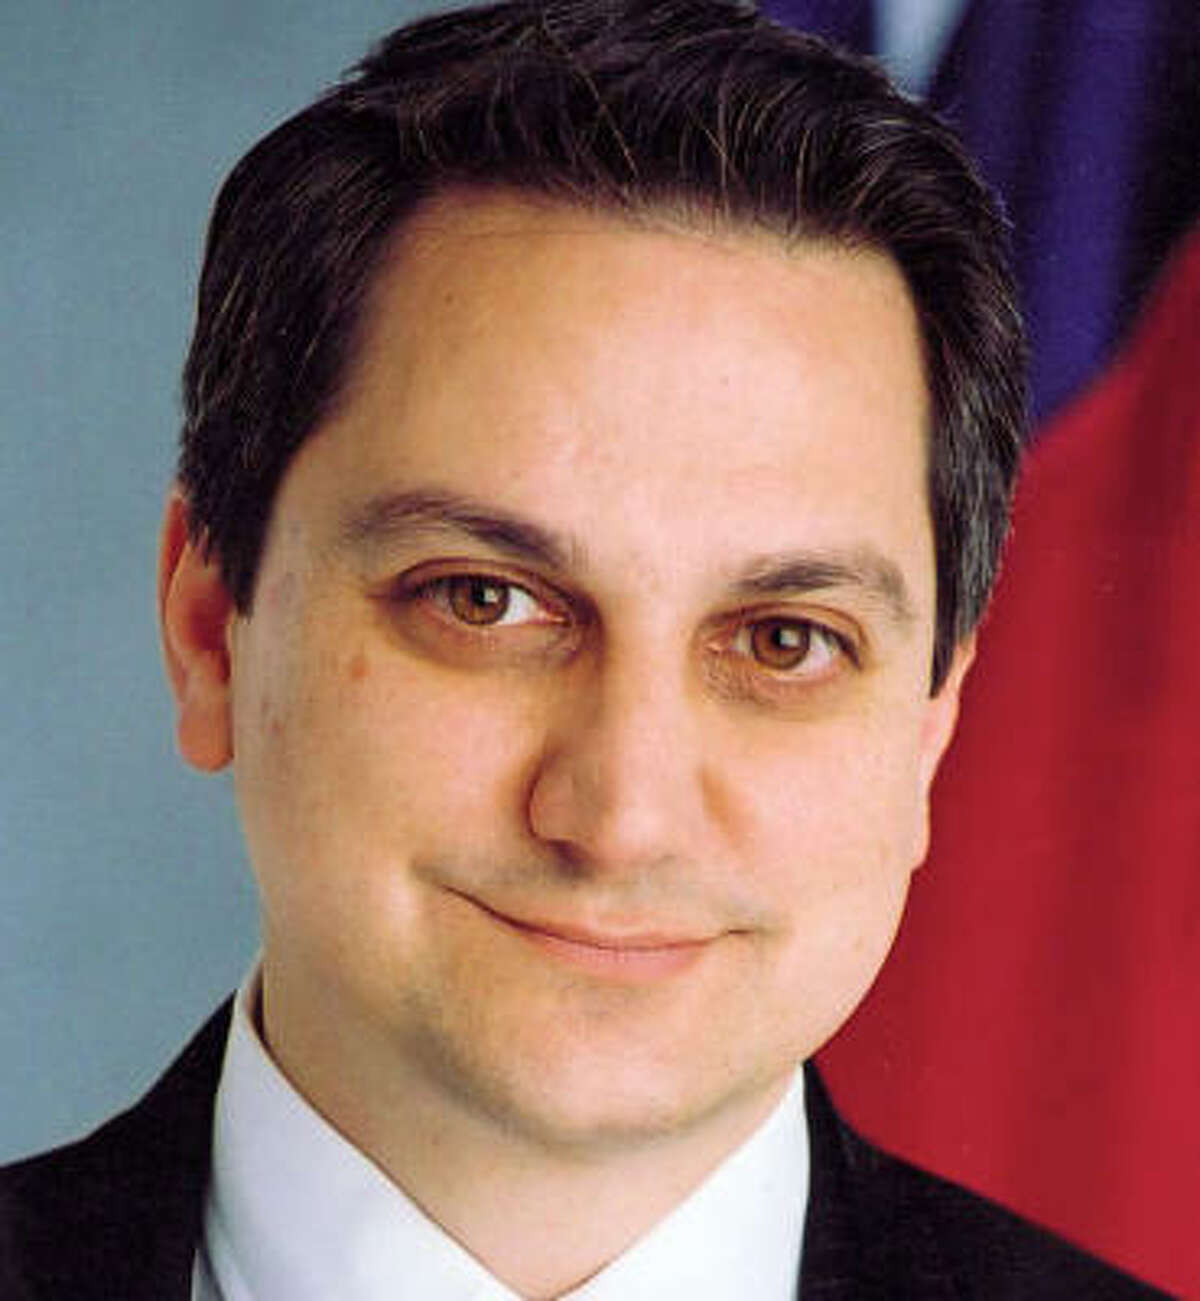 Steve Munisteri wants the Texas Republican Party to shore up its finances.